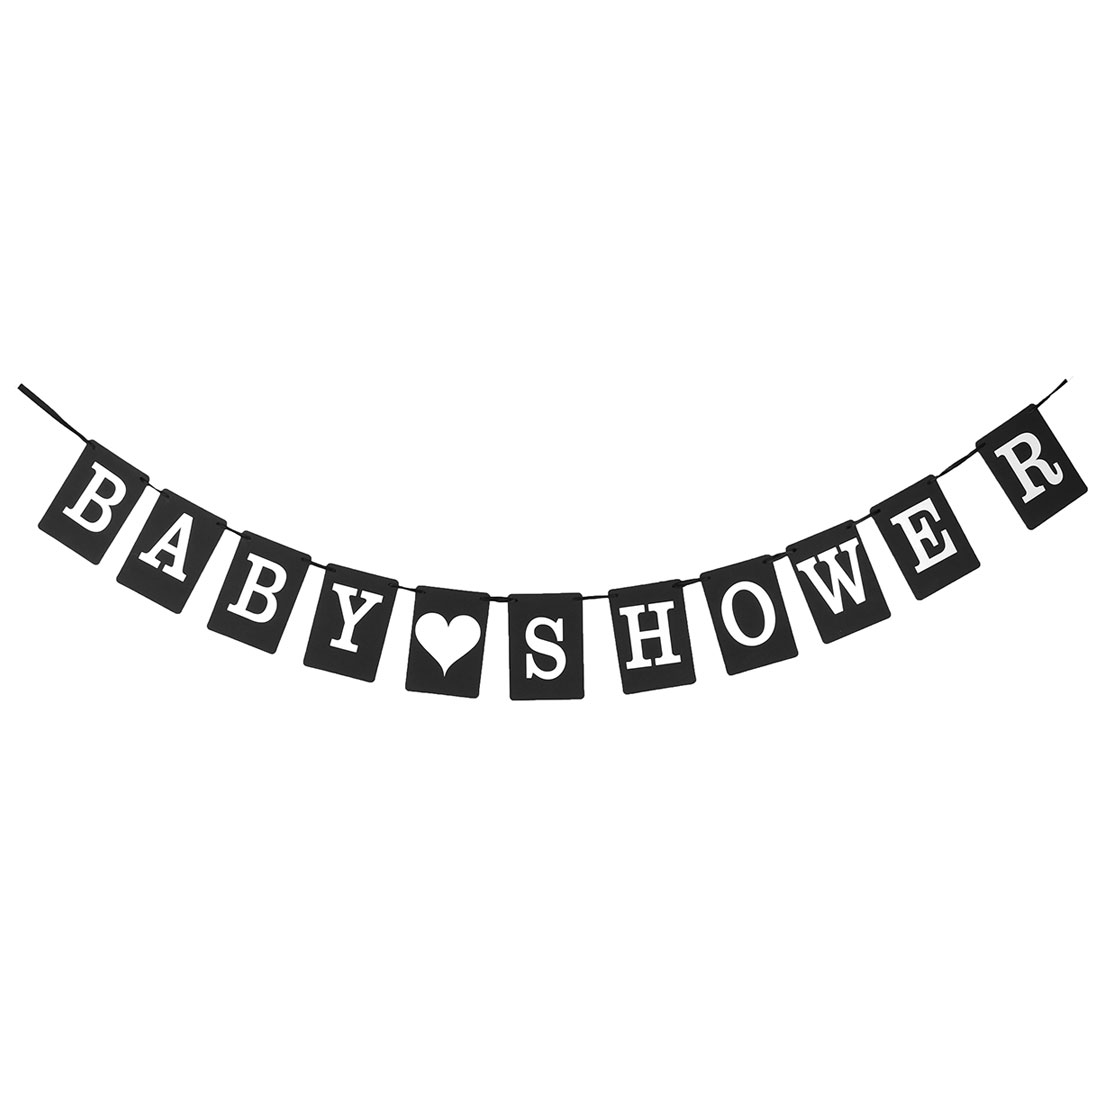 BABY SHOWER Bunting Garland Sign Banner Photo Prop Party Decor Black